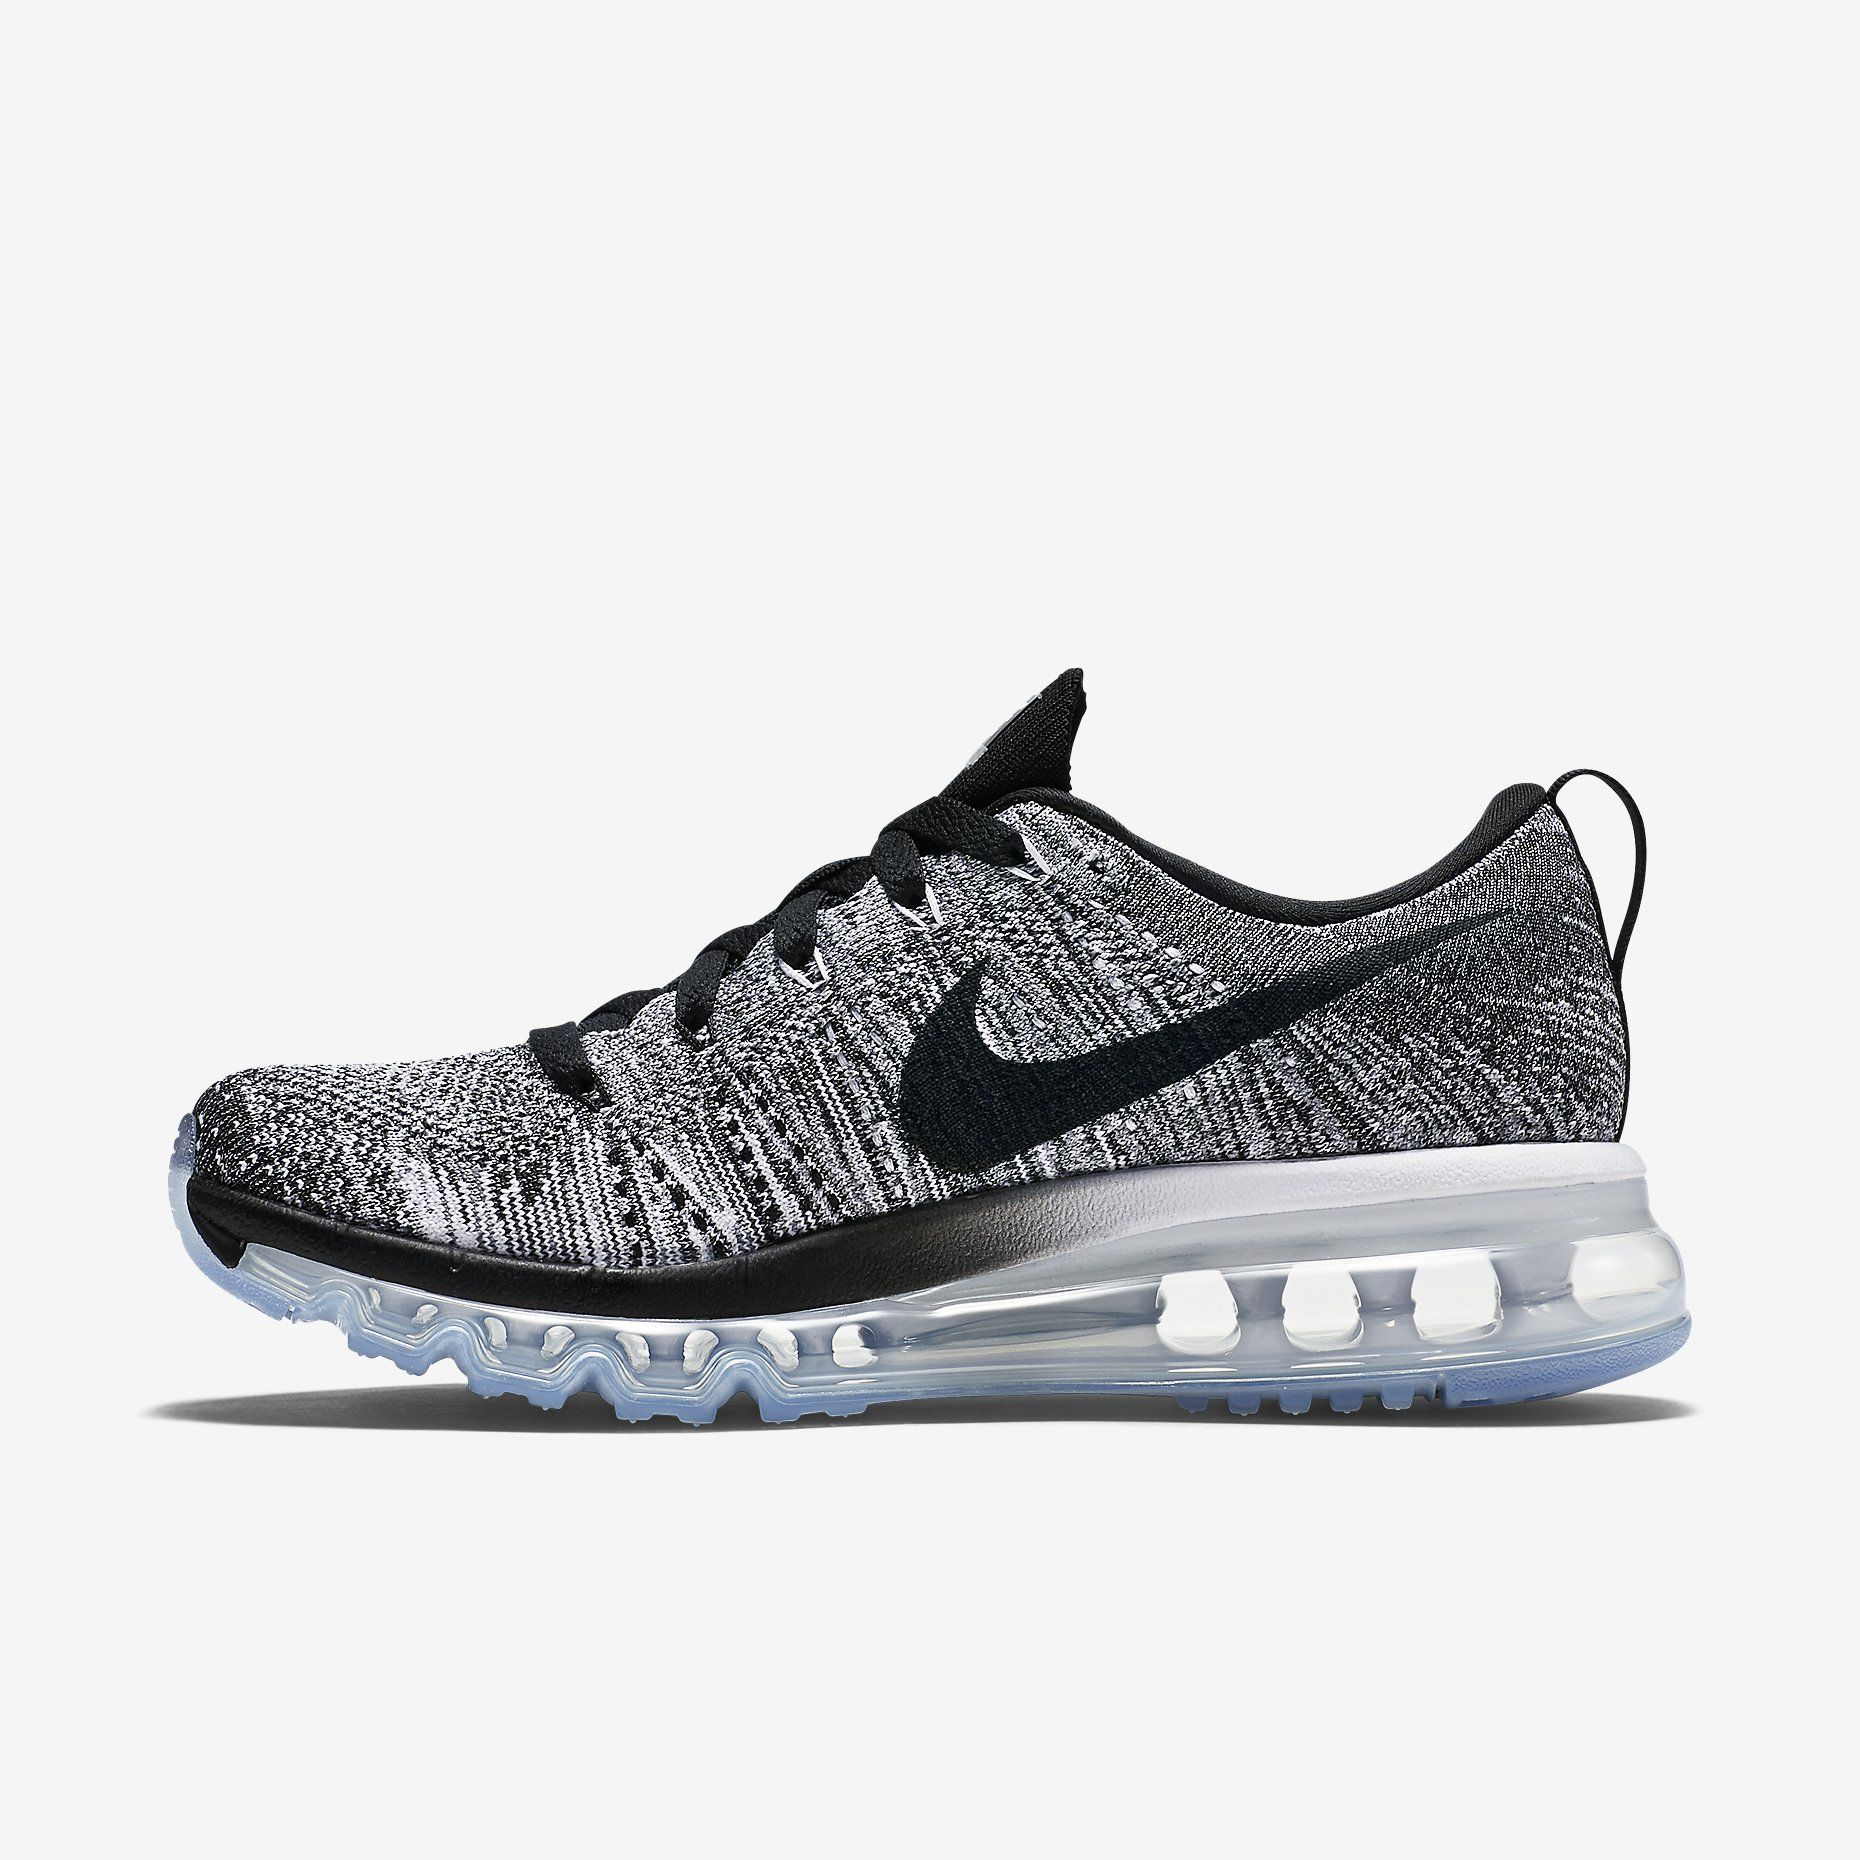 cheap for discount d4830 1bbbc Nike Flyknit Air Max – Chaussure de running pour Femme. Nike Store FR